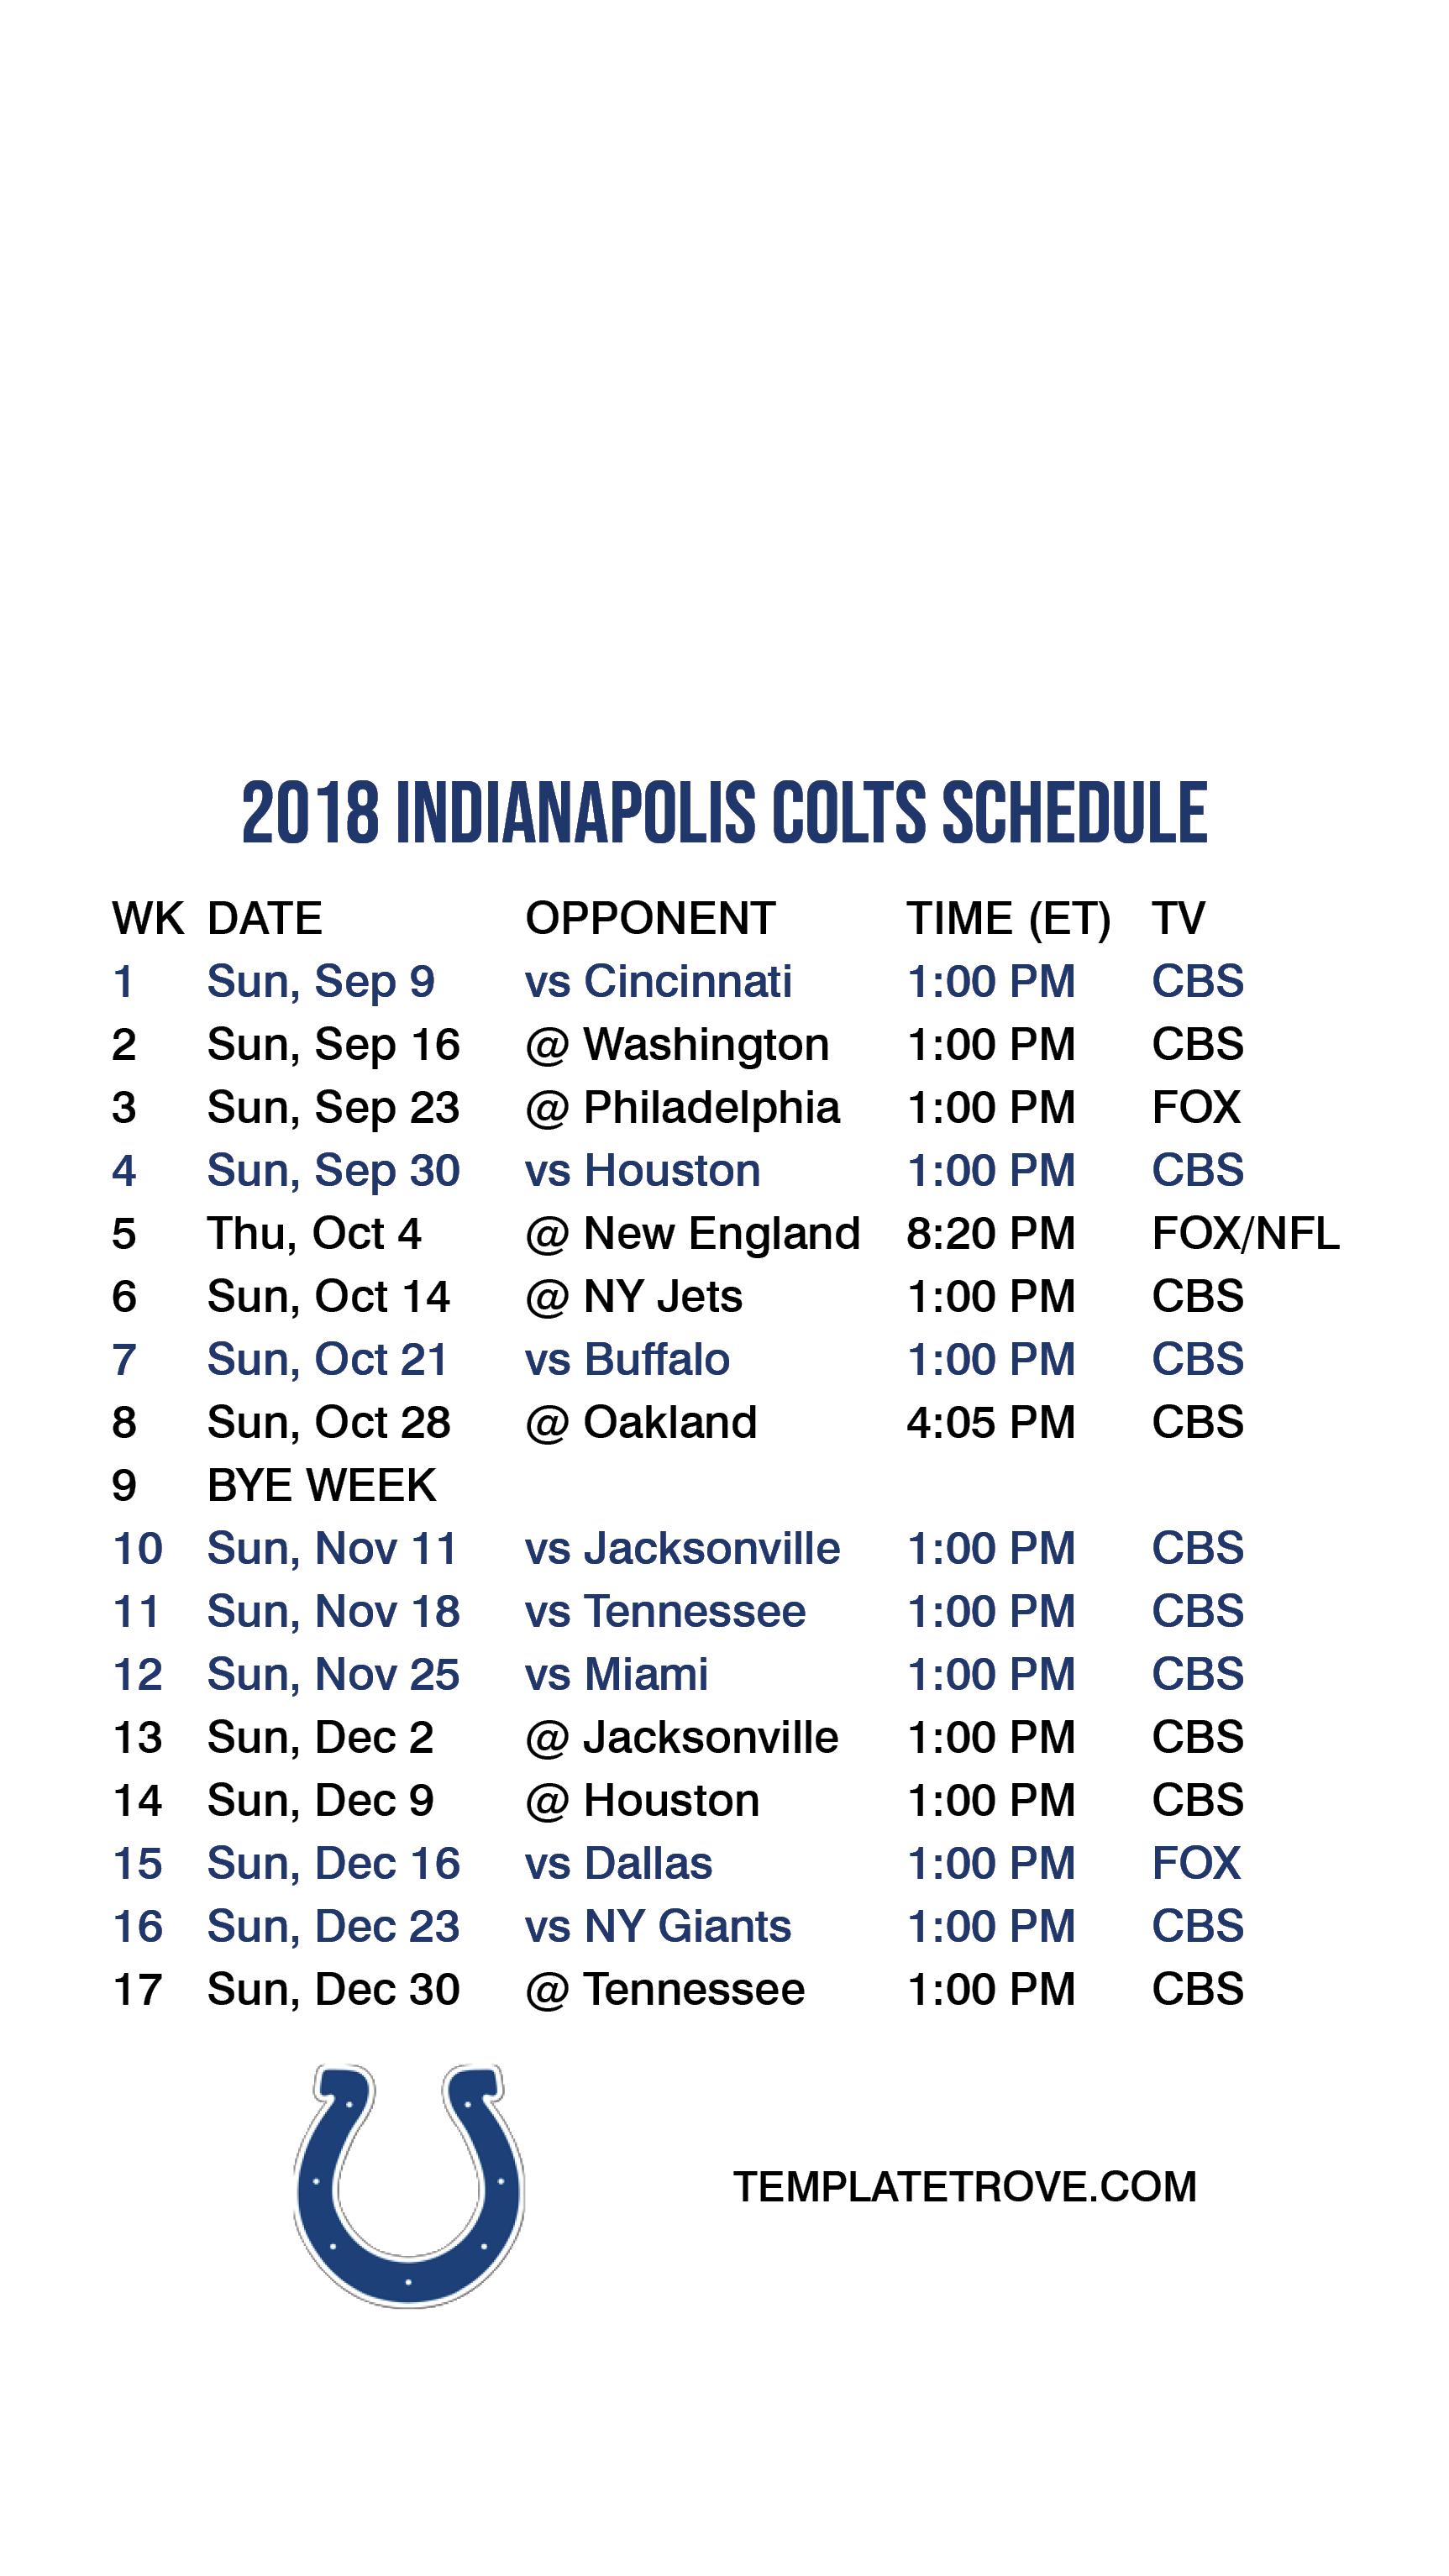 2018 2019 Indianapolis Colts Lock Screen Schedule for iPhone 6 7 8 1725x3067